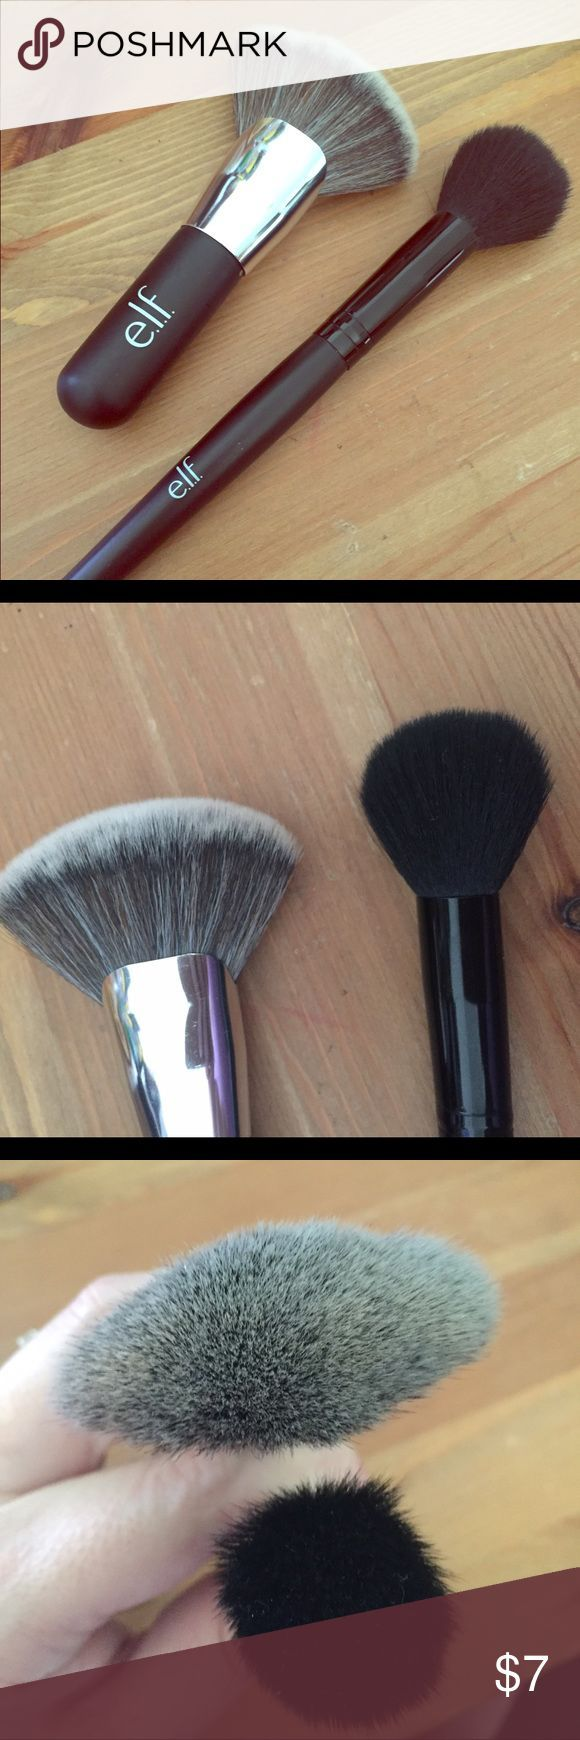 Elf brush set Includes the Beautifully Bare Blending Brush and the Small Tapered Brush. ELF Makeup Brushes & Tools